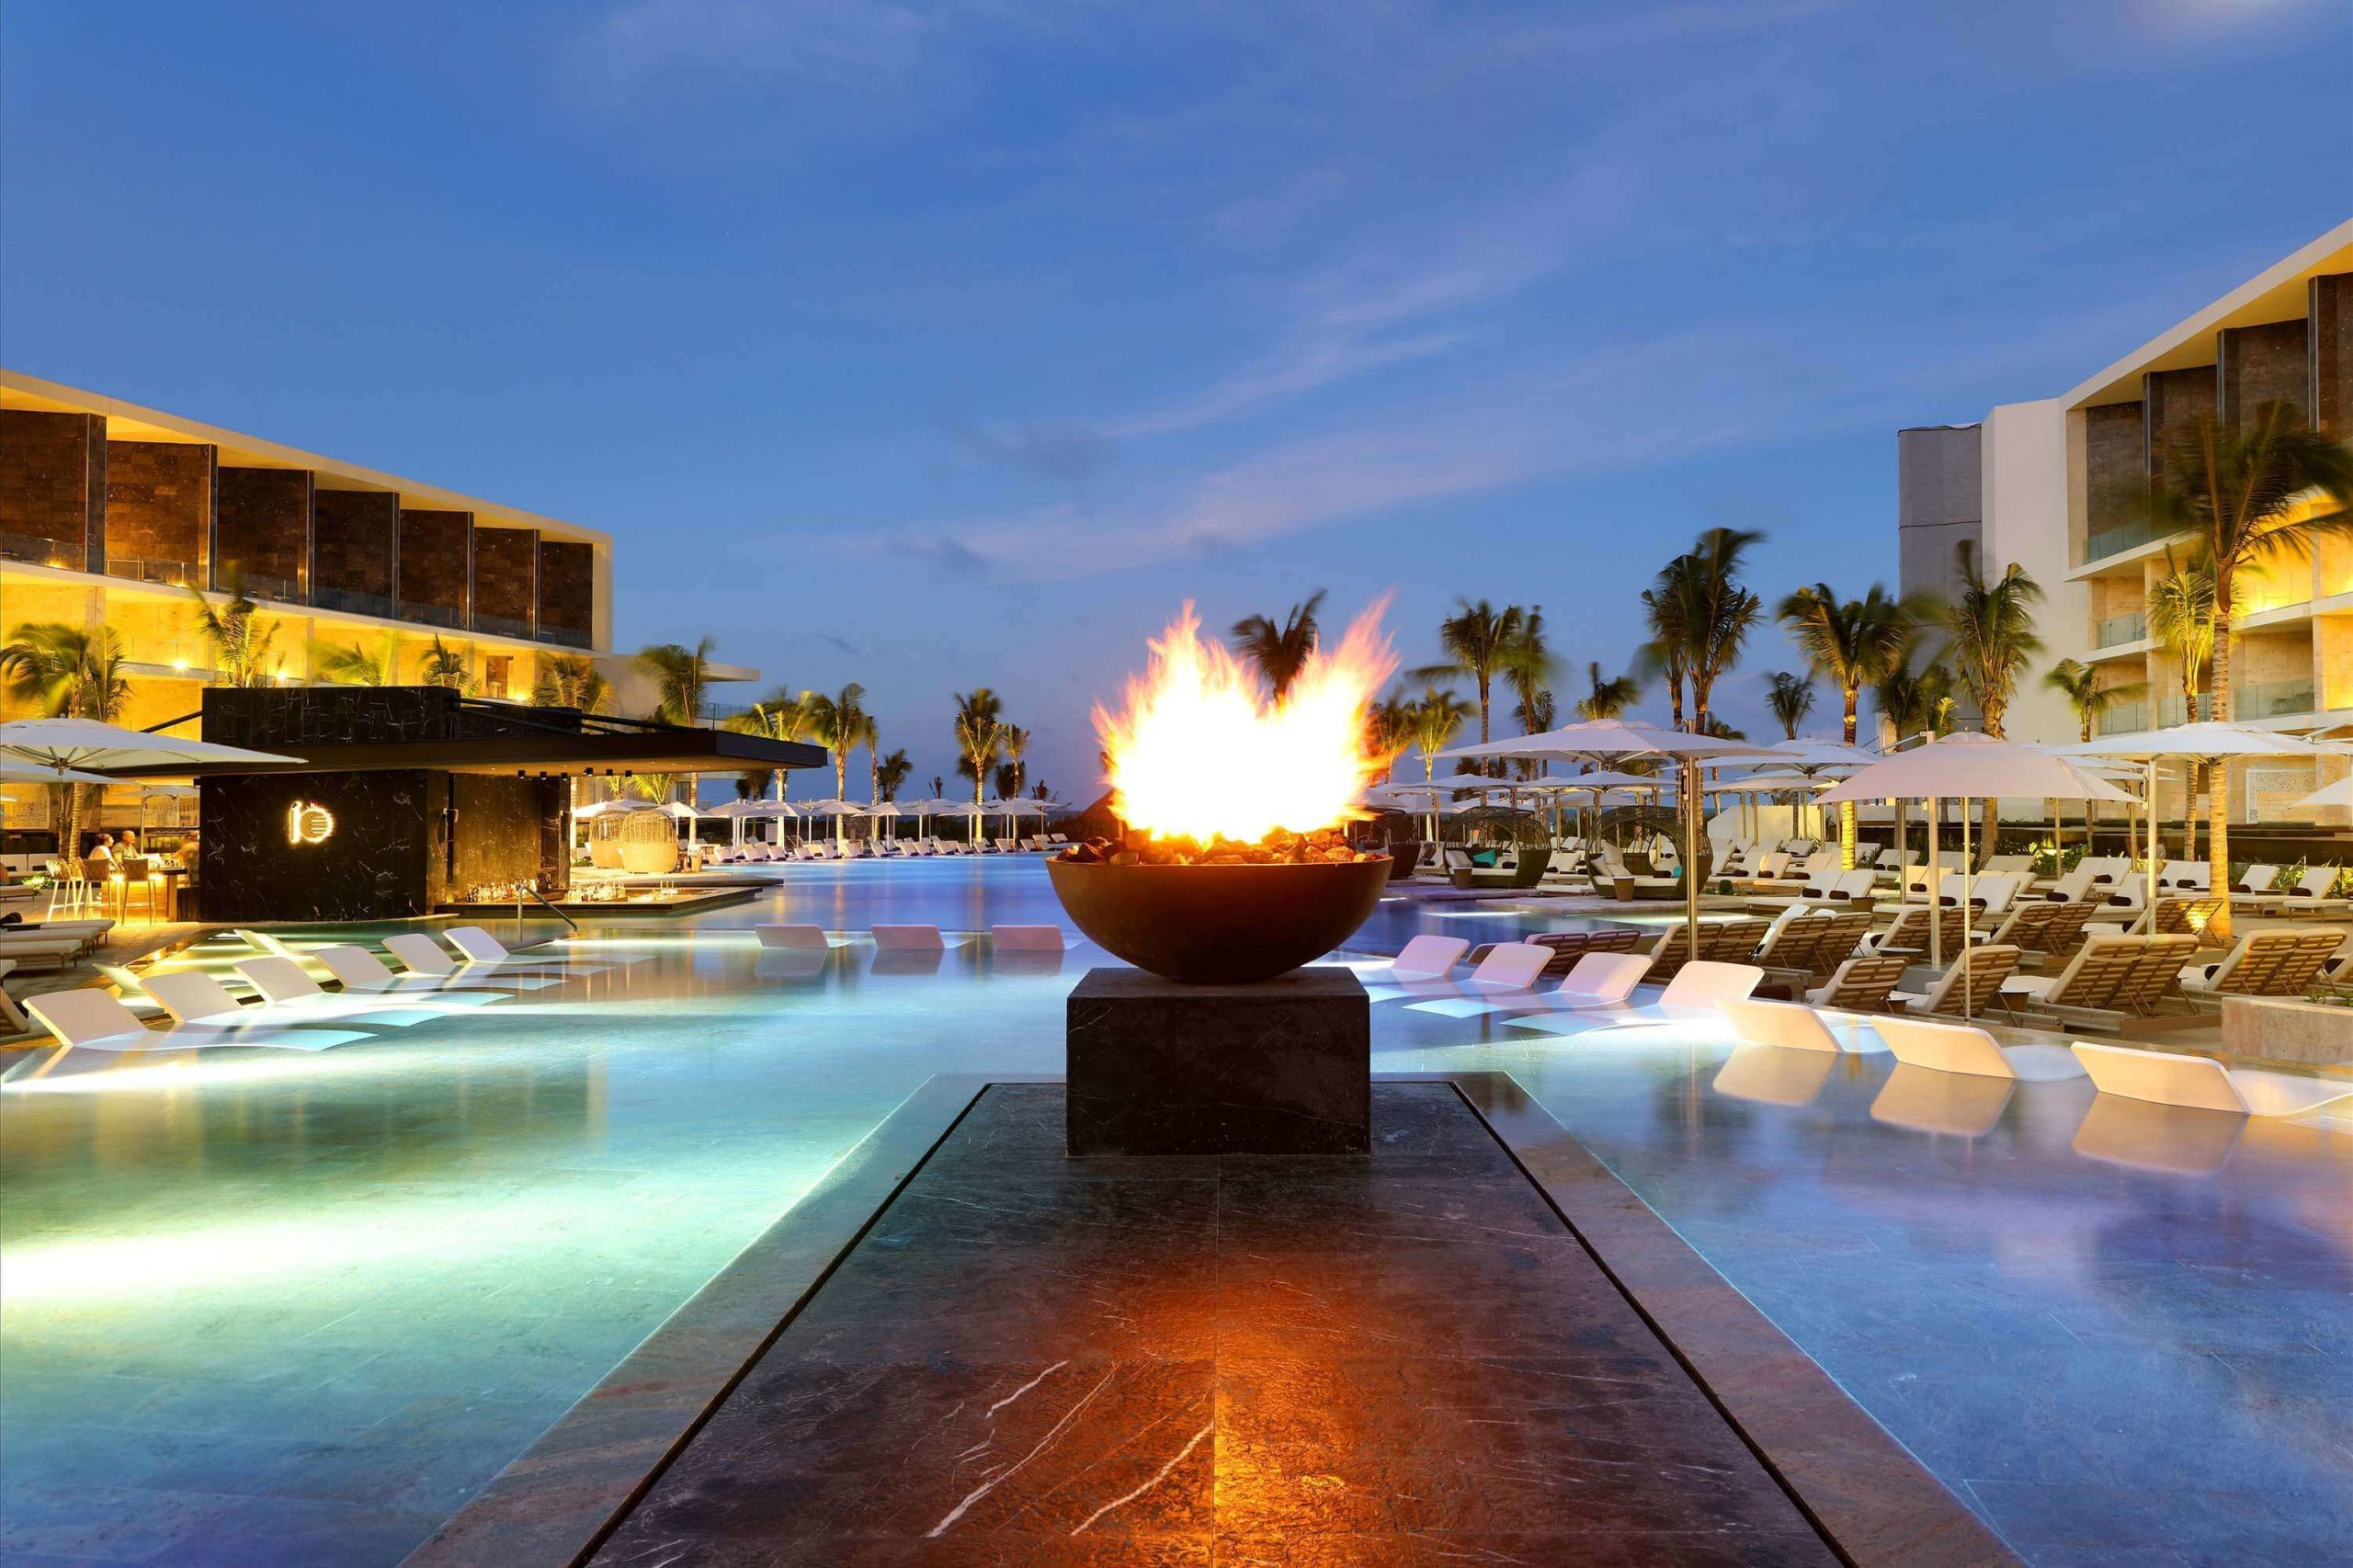 pool with firepit at dusk